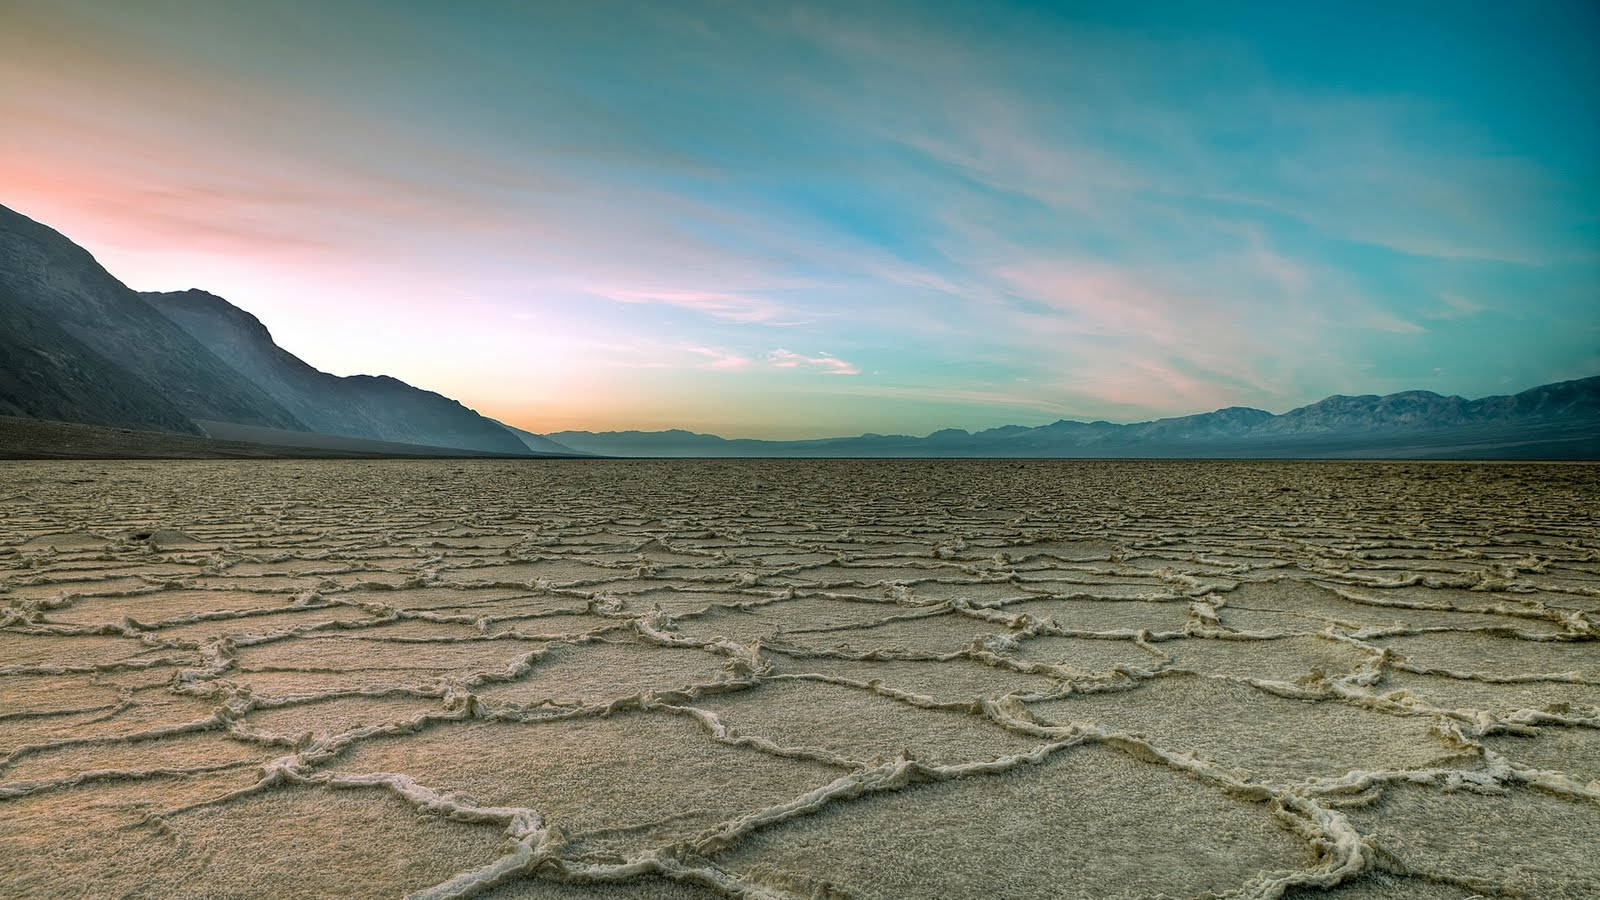 http://1.bp.blogspot.com/-WJiCt92K4-s/Td_nmBpD2cI/AAAAAAAAAp0/tfCPhiFkSU0/s1600/death-valley-national-park-california-usa-nature-wallpaper-1920x1080-130.jpg